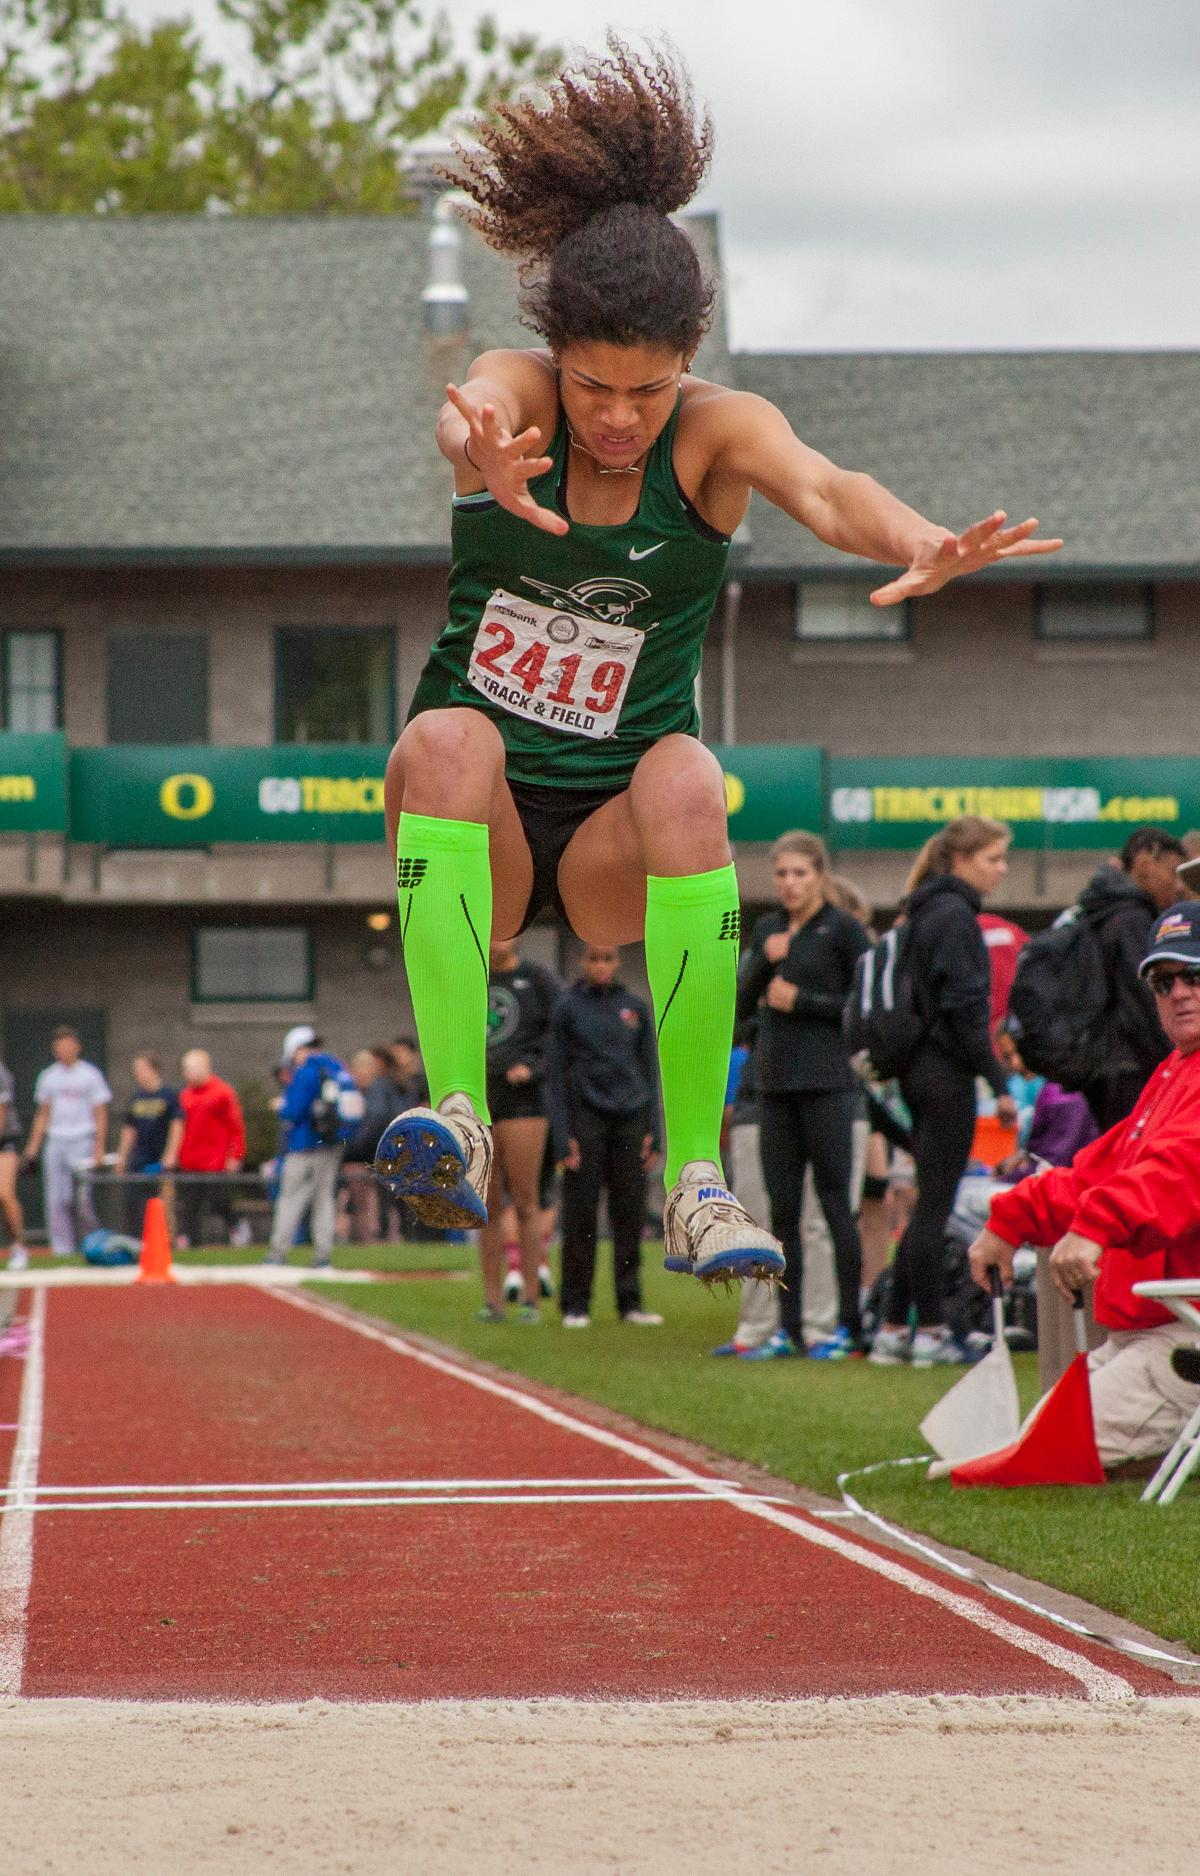 Taylor McCarrell from West Salem High School wins the Girls Triple Jump 6A event with the distance of 38-02.25 at the OSAA Track and Field State Championships at Hayward Field. Photo by Vannie Cooper, Oregon News Lab